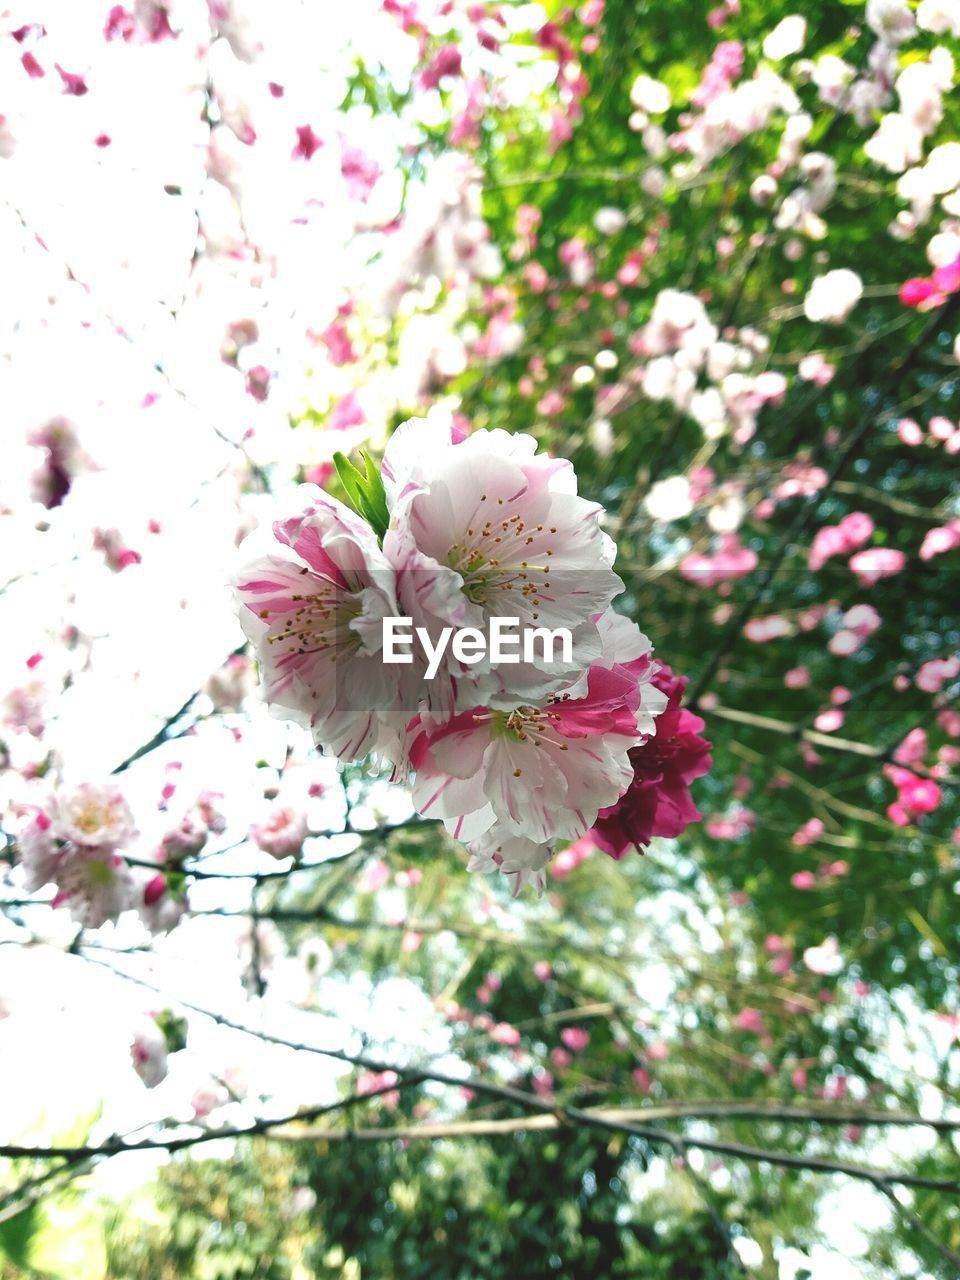 flower, blossom, fragility, growth, nature, pink color, white color, freshness, apple blossom, beauty in nature, petal, springtime, botany, tree, flower head, branch, stamen, spring, no people, blooming, pollen, day, plum blossom, close-up, outdoors, low angle view